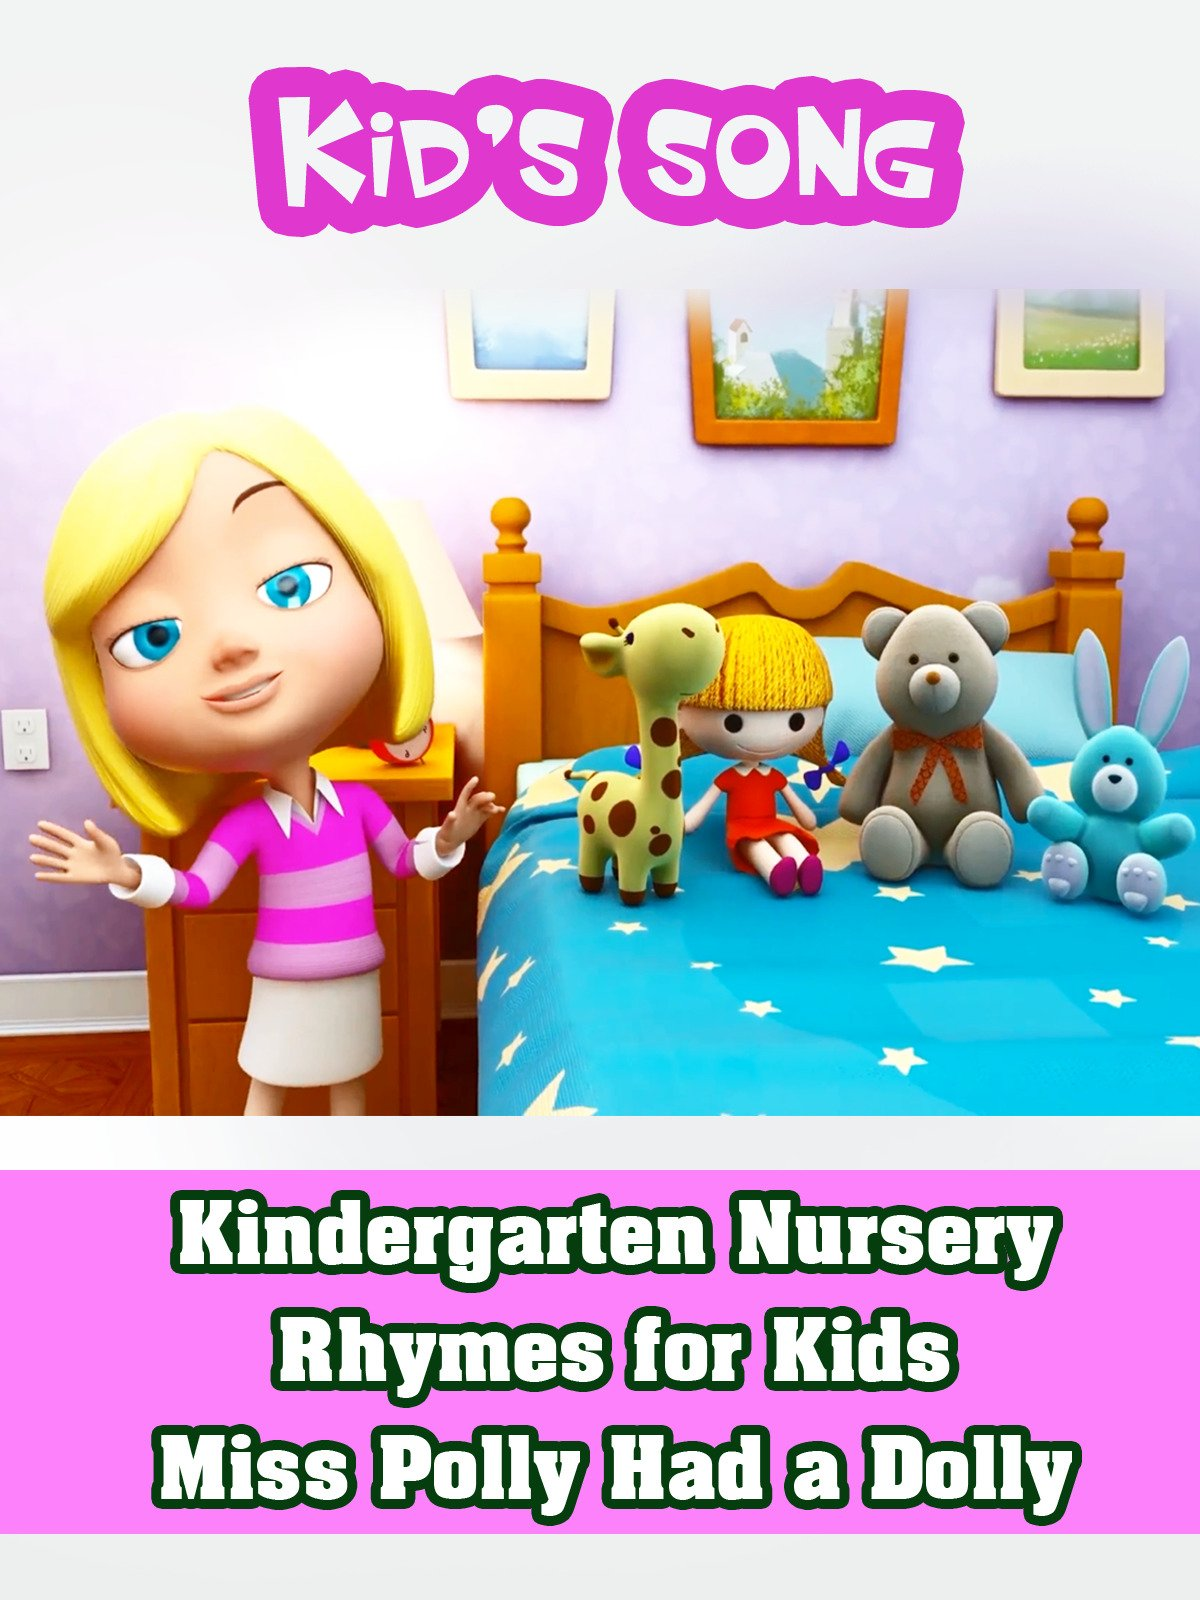 Kindergarten Nursery Rhymes for Kids